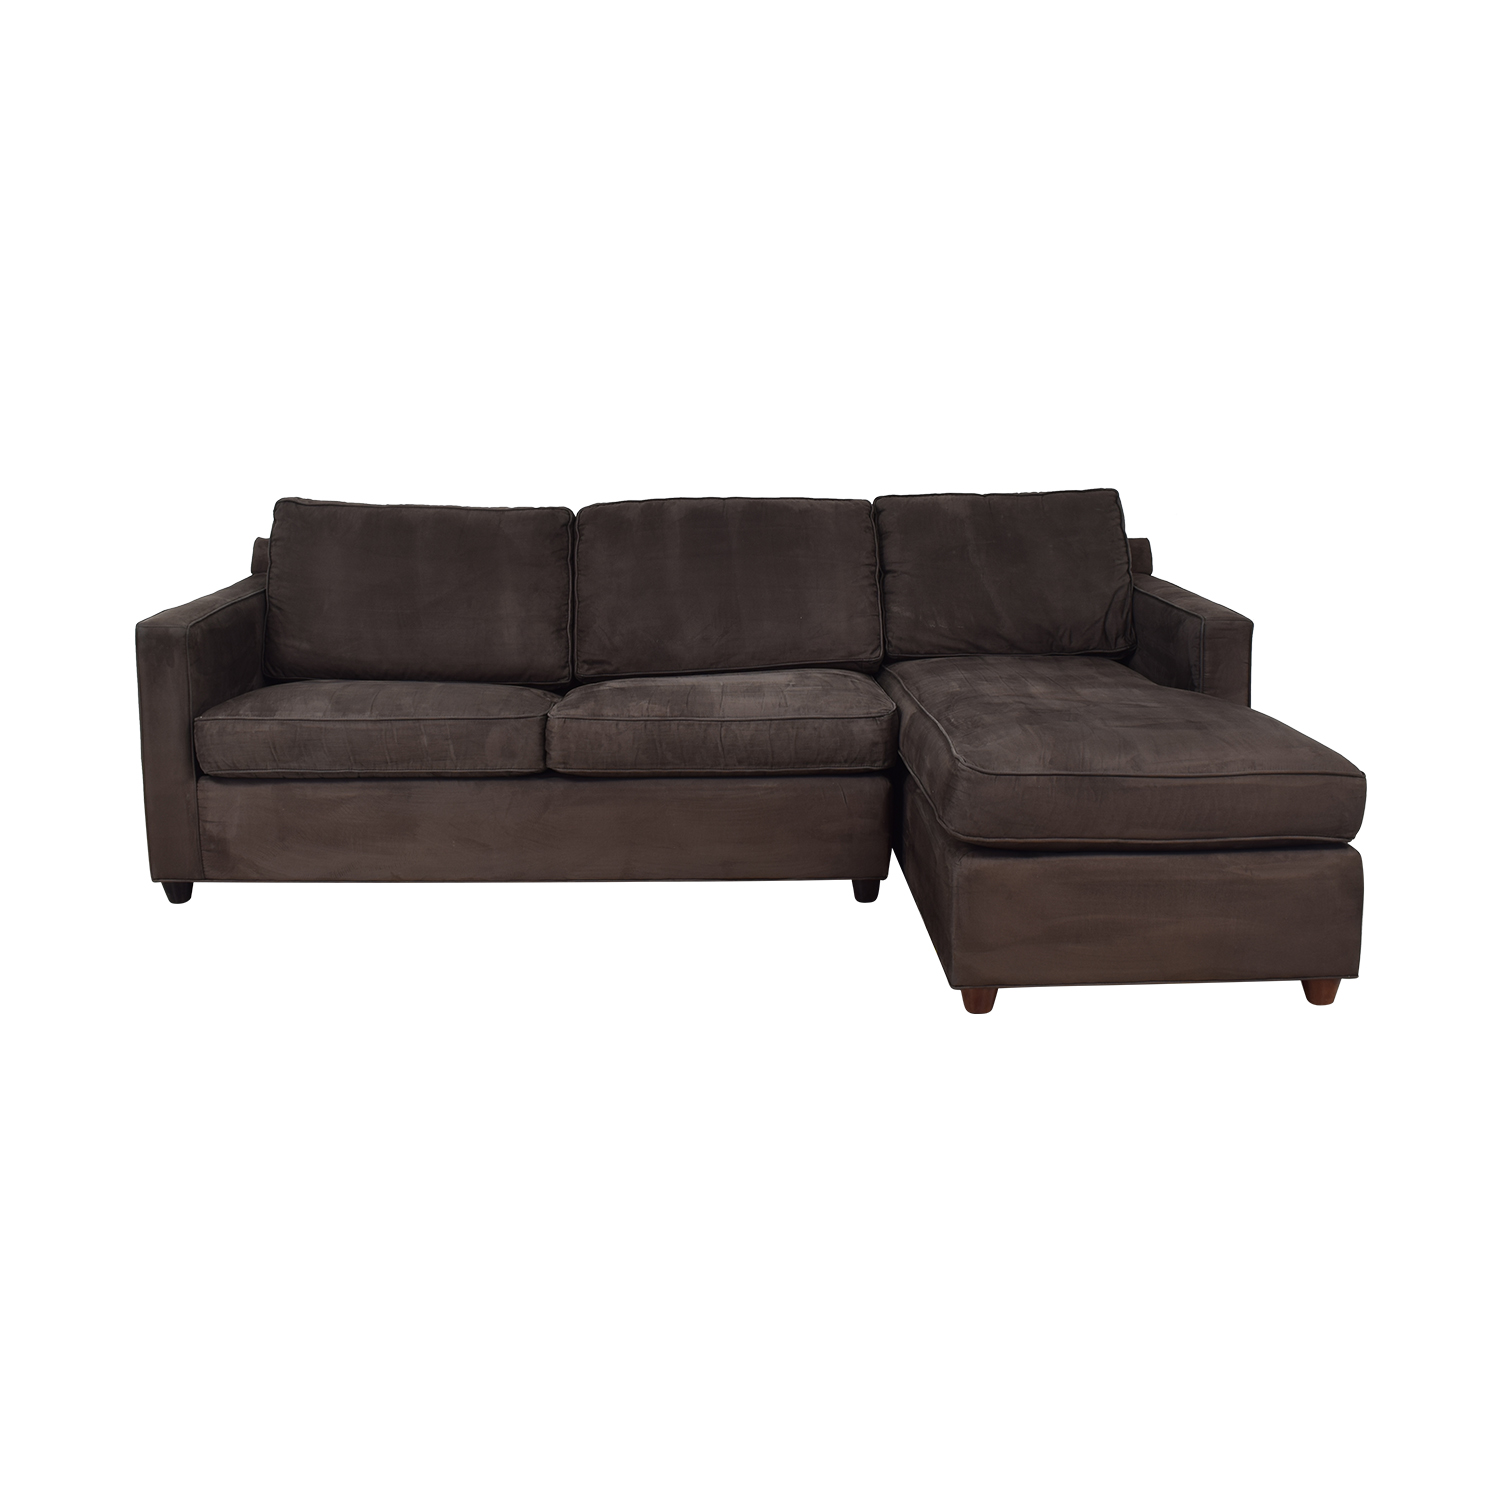 shop Crate & Barrel Crate & Barrel Sectional Sleeper online